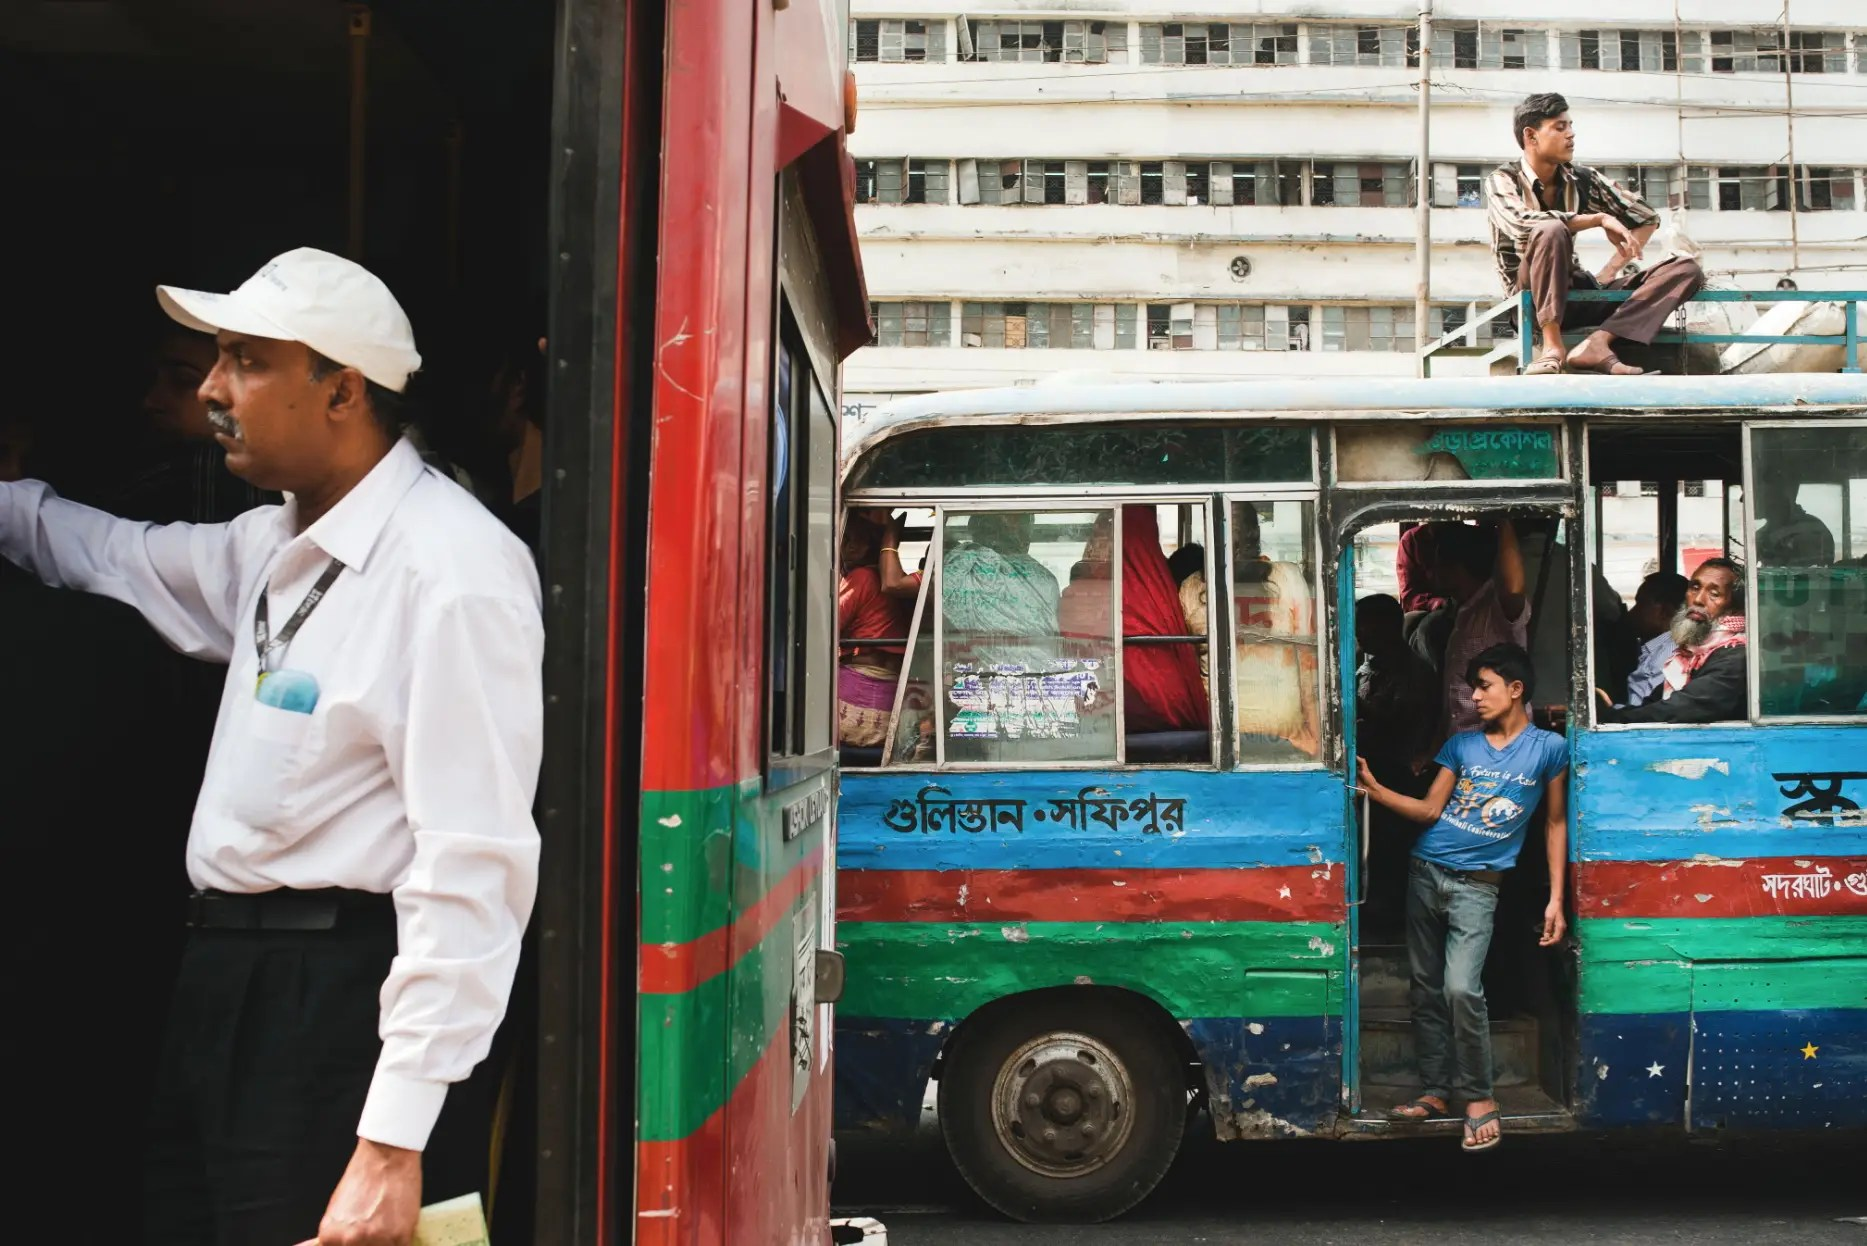 Passengers make their way through rush-hour traffic in one of Dhaka's public buses